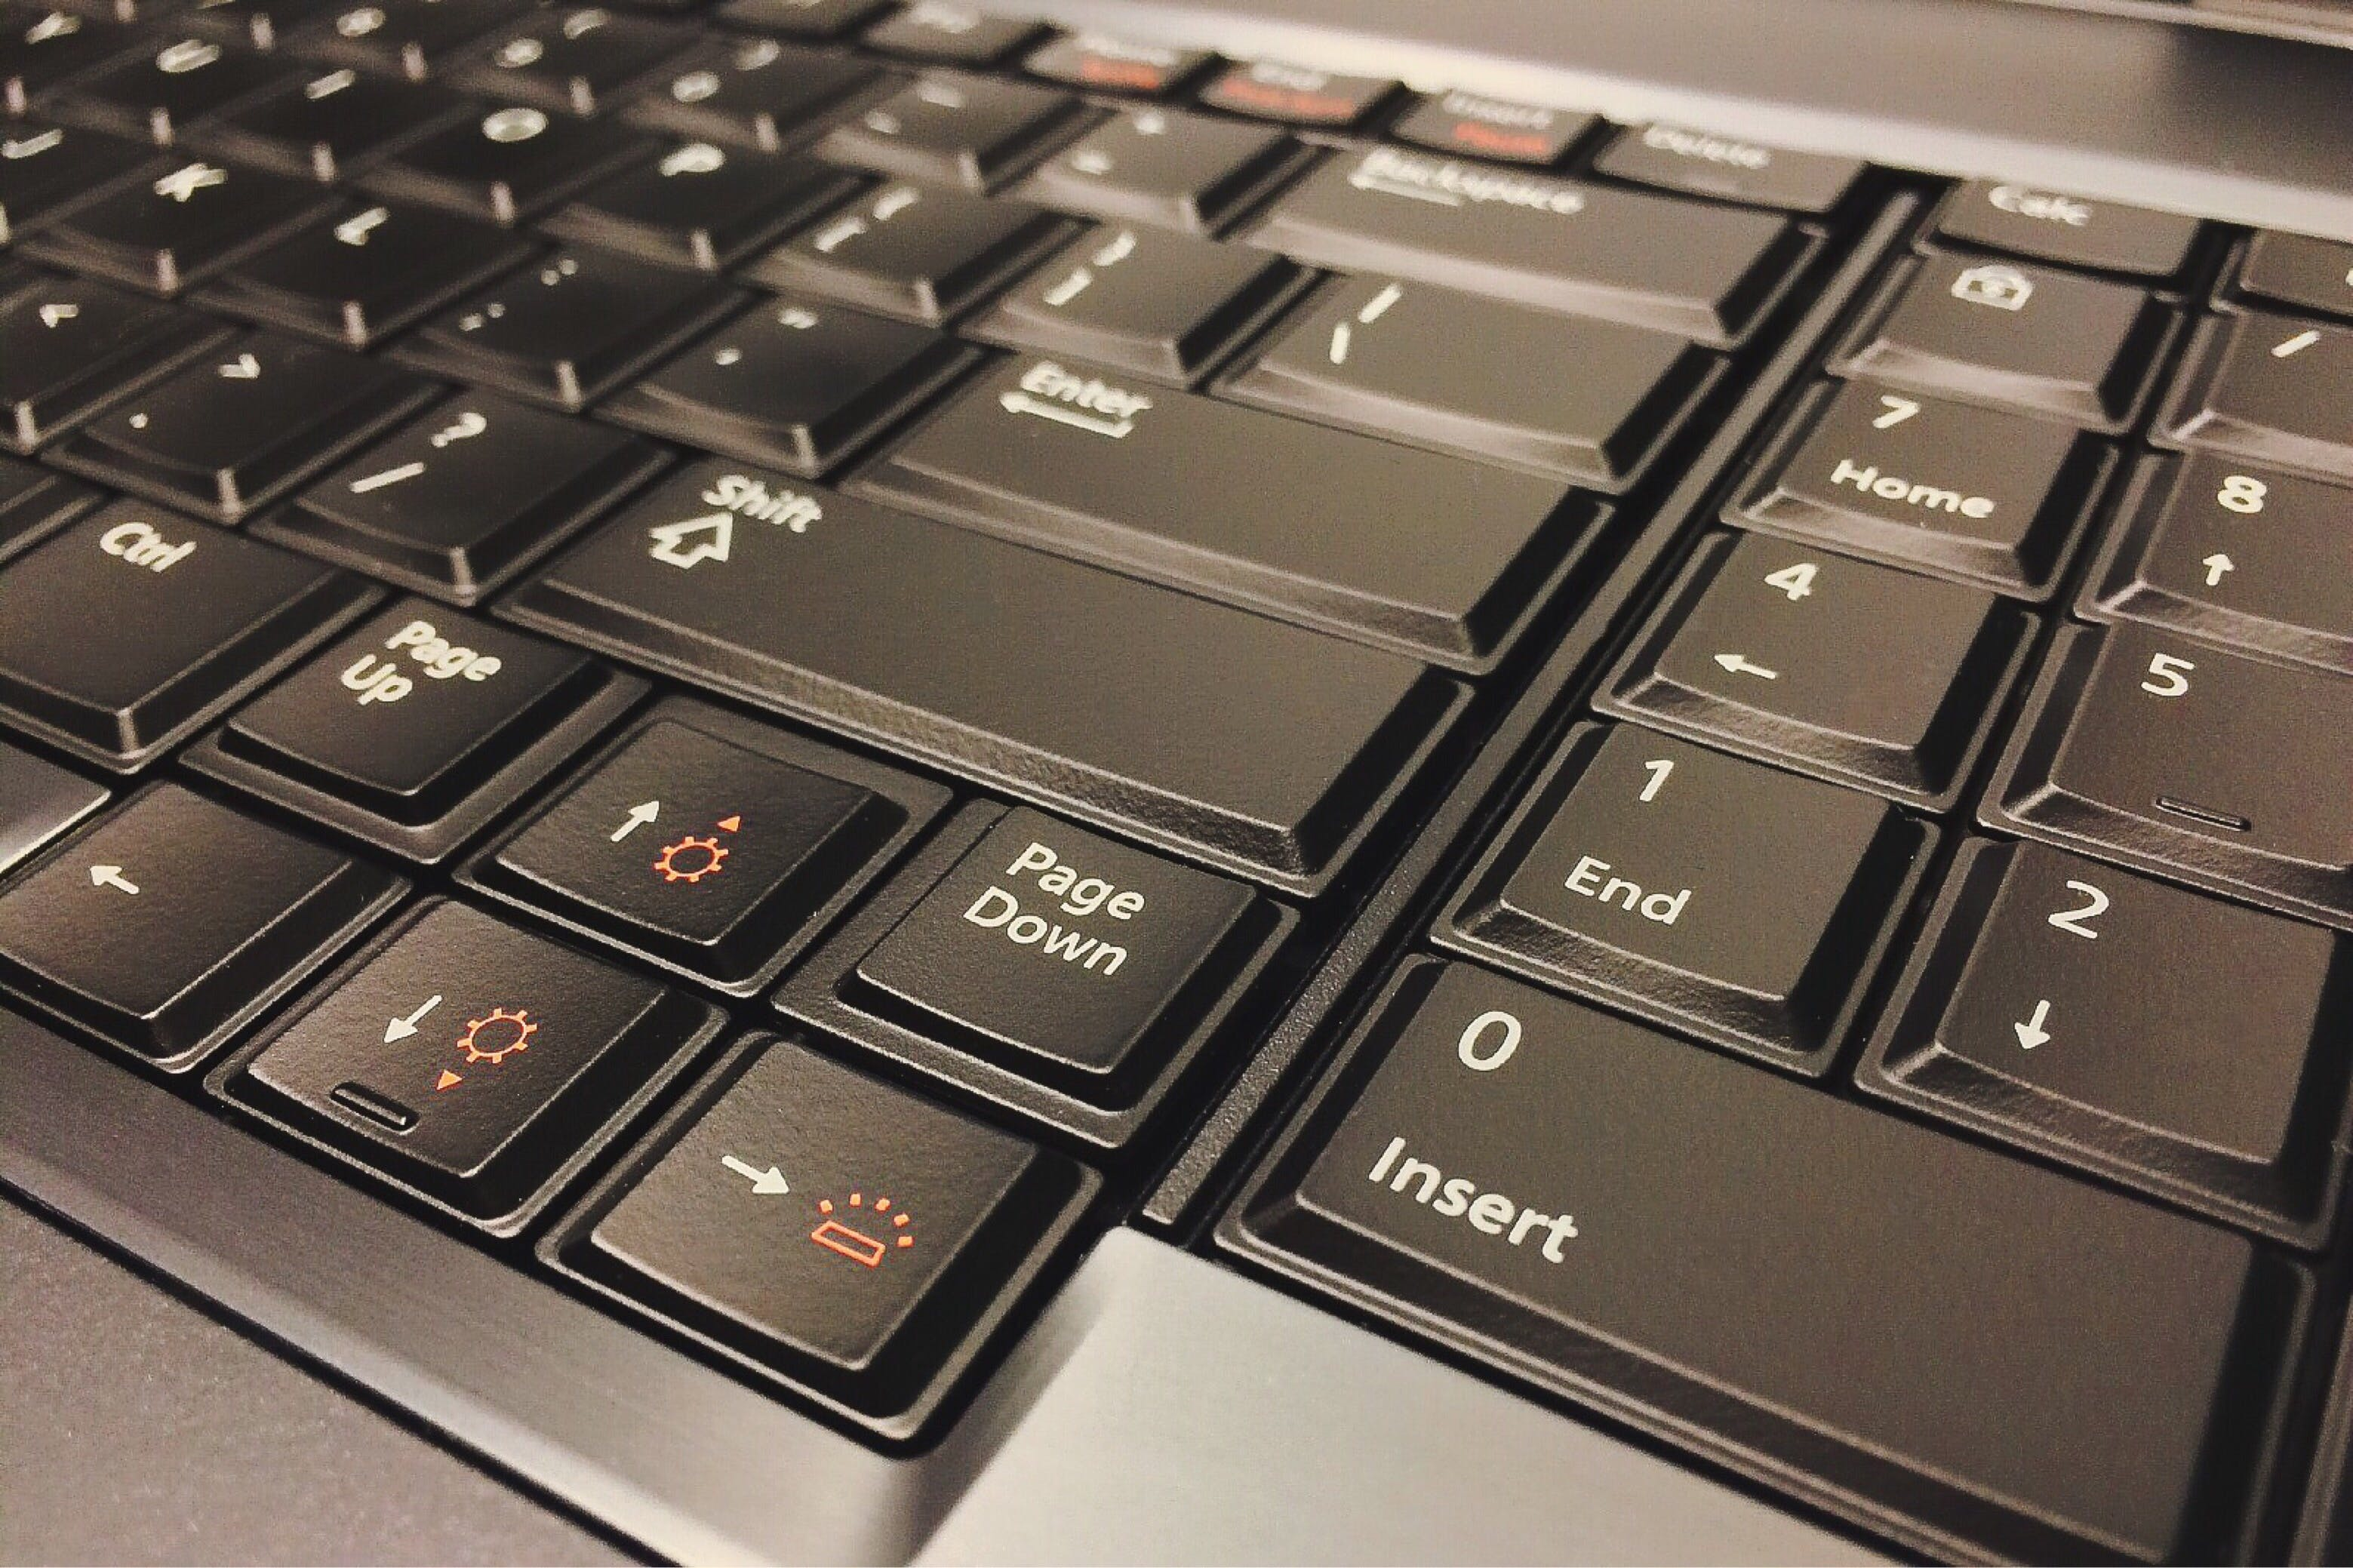 Full Frame Shot of Computer Keyboard